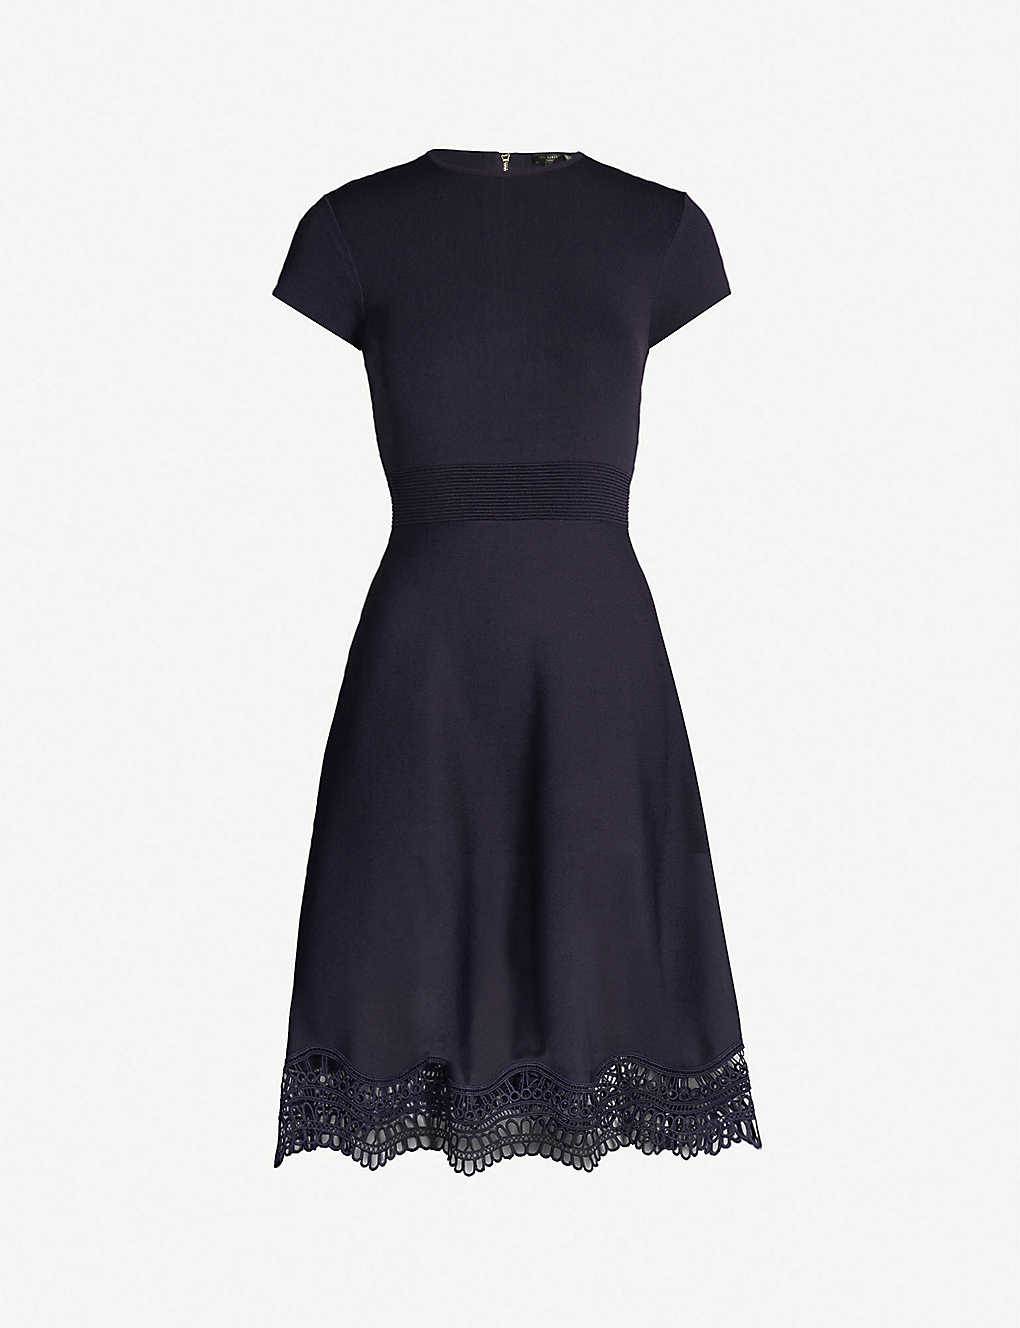 59ad1b1168a67 TED BAKER - Ellijo lace trim dress